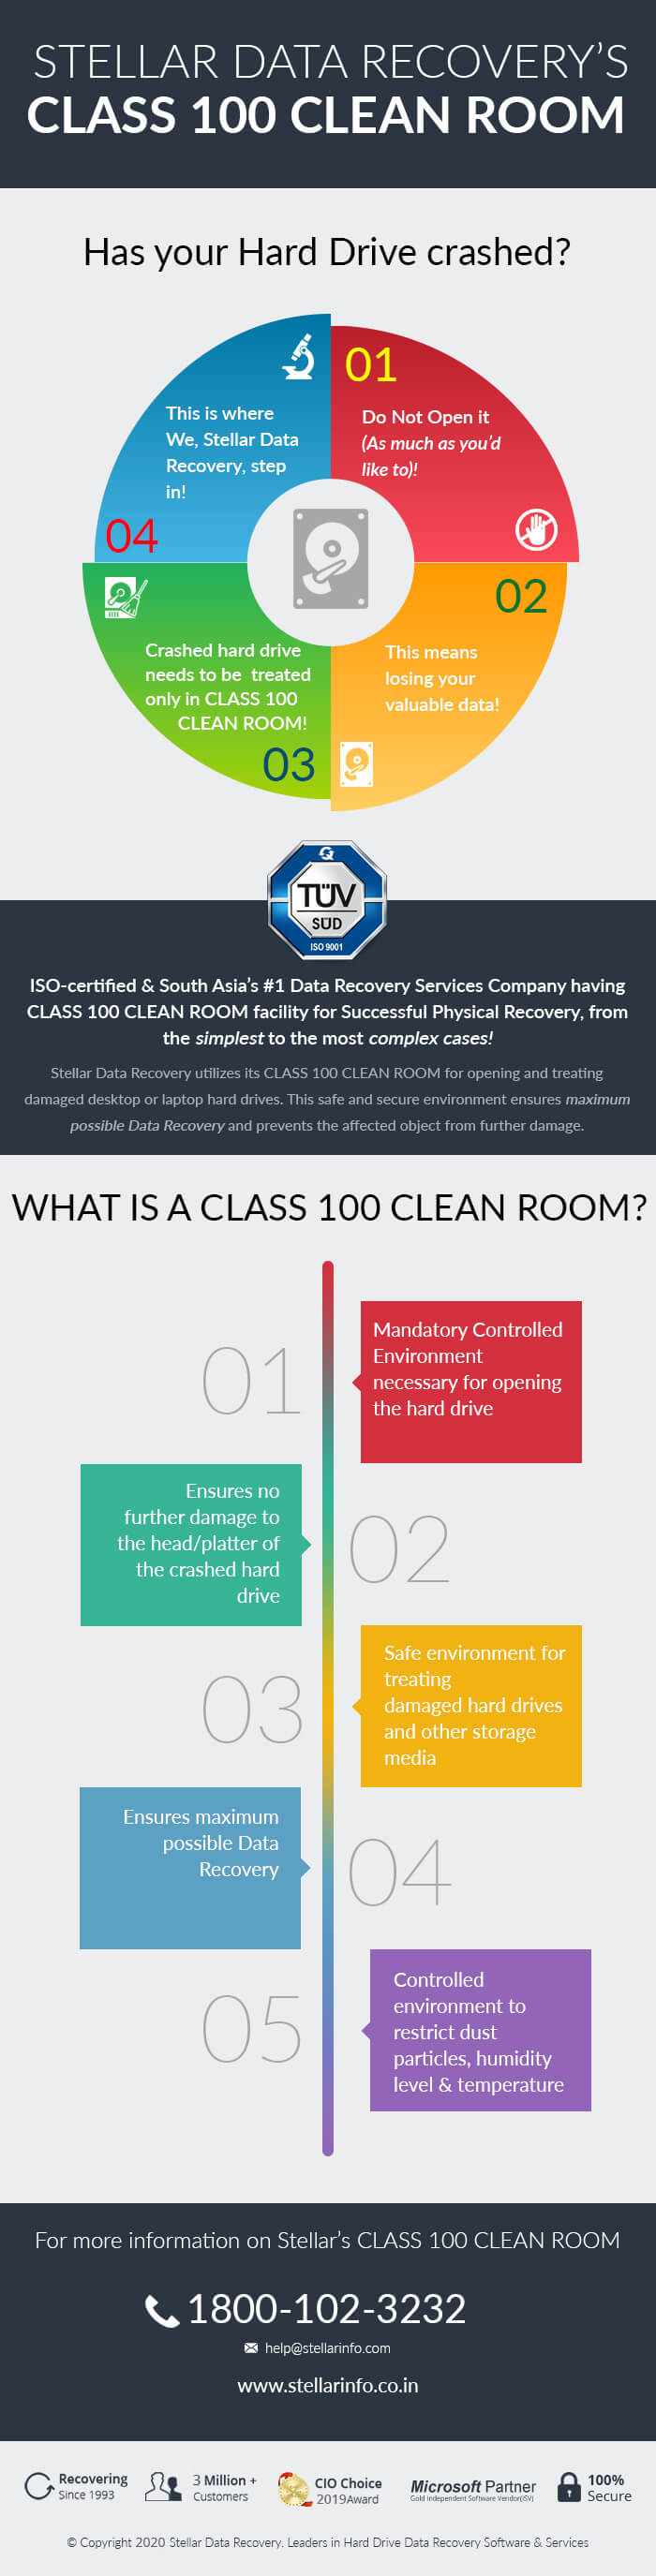 Class 100 Clean Room infographic